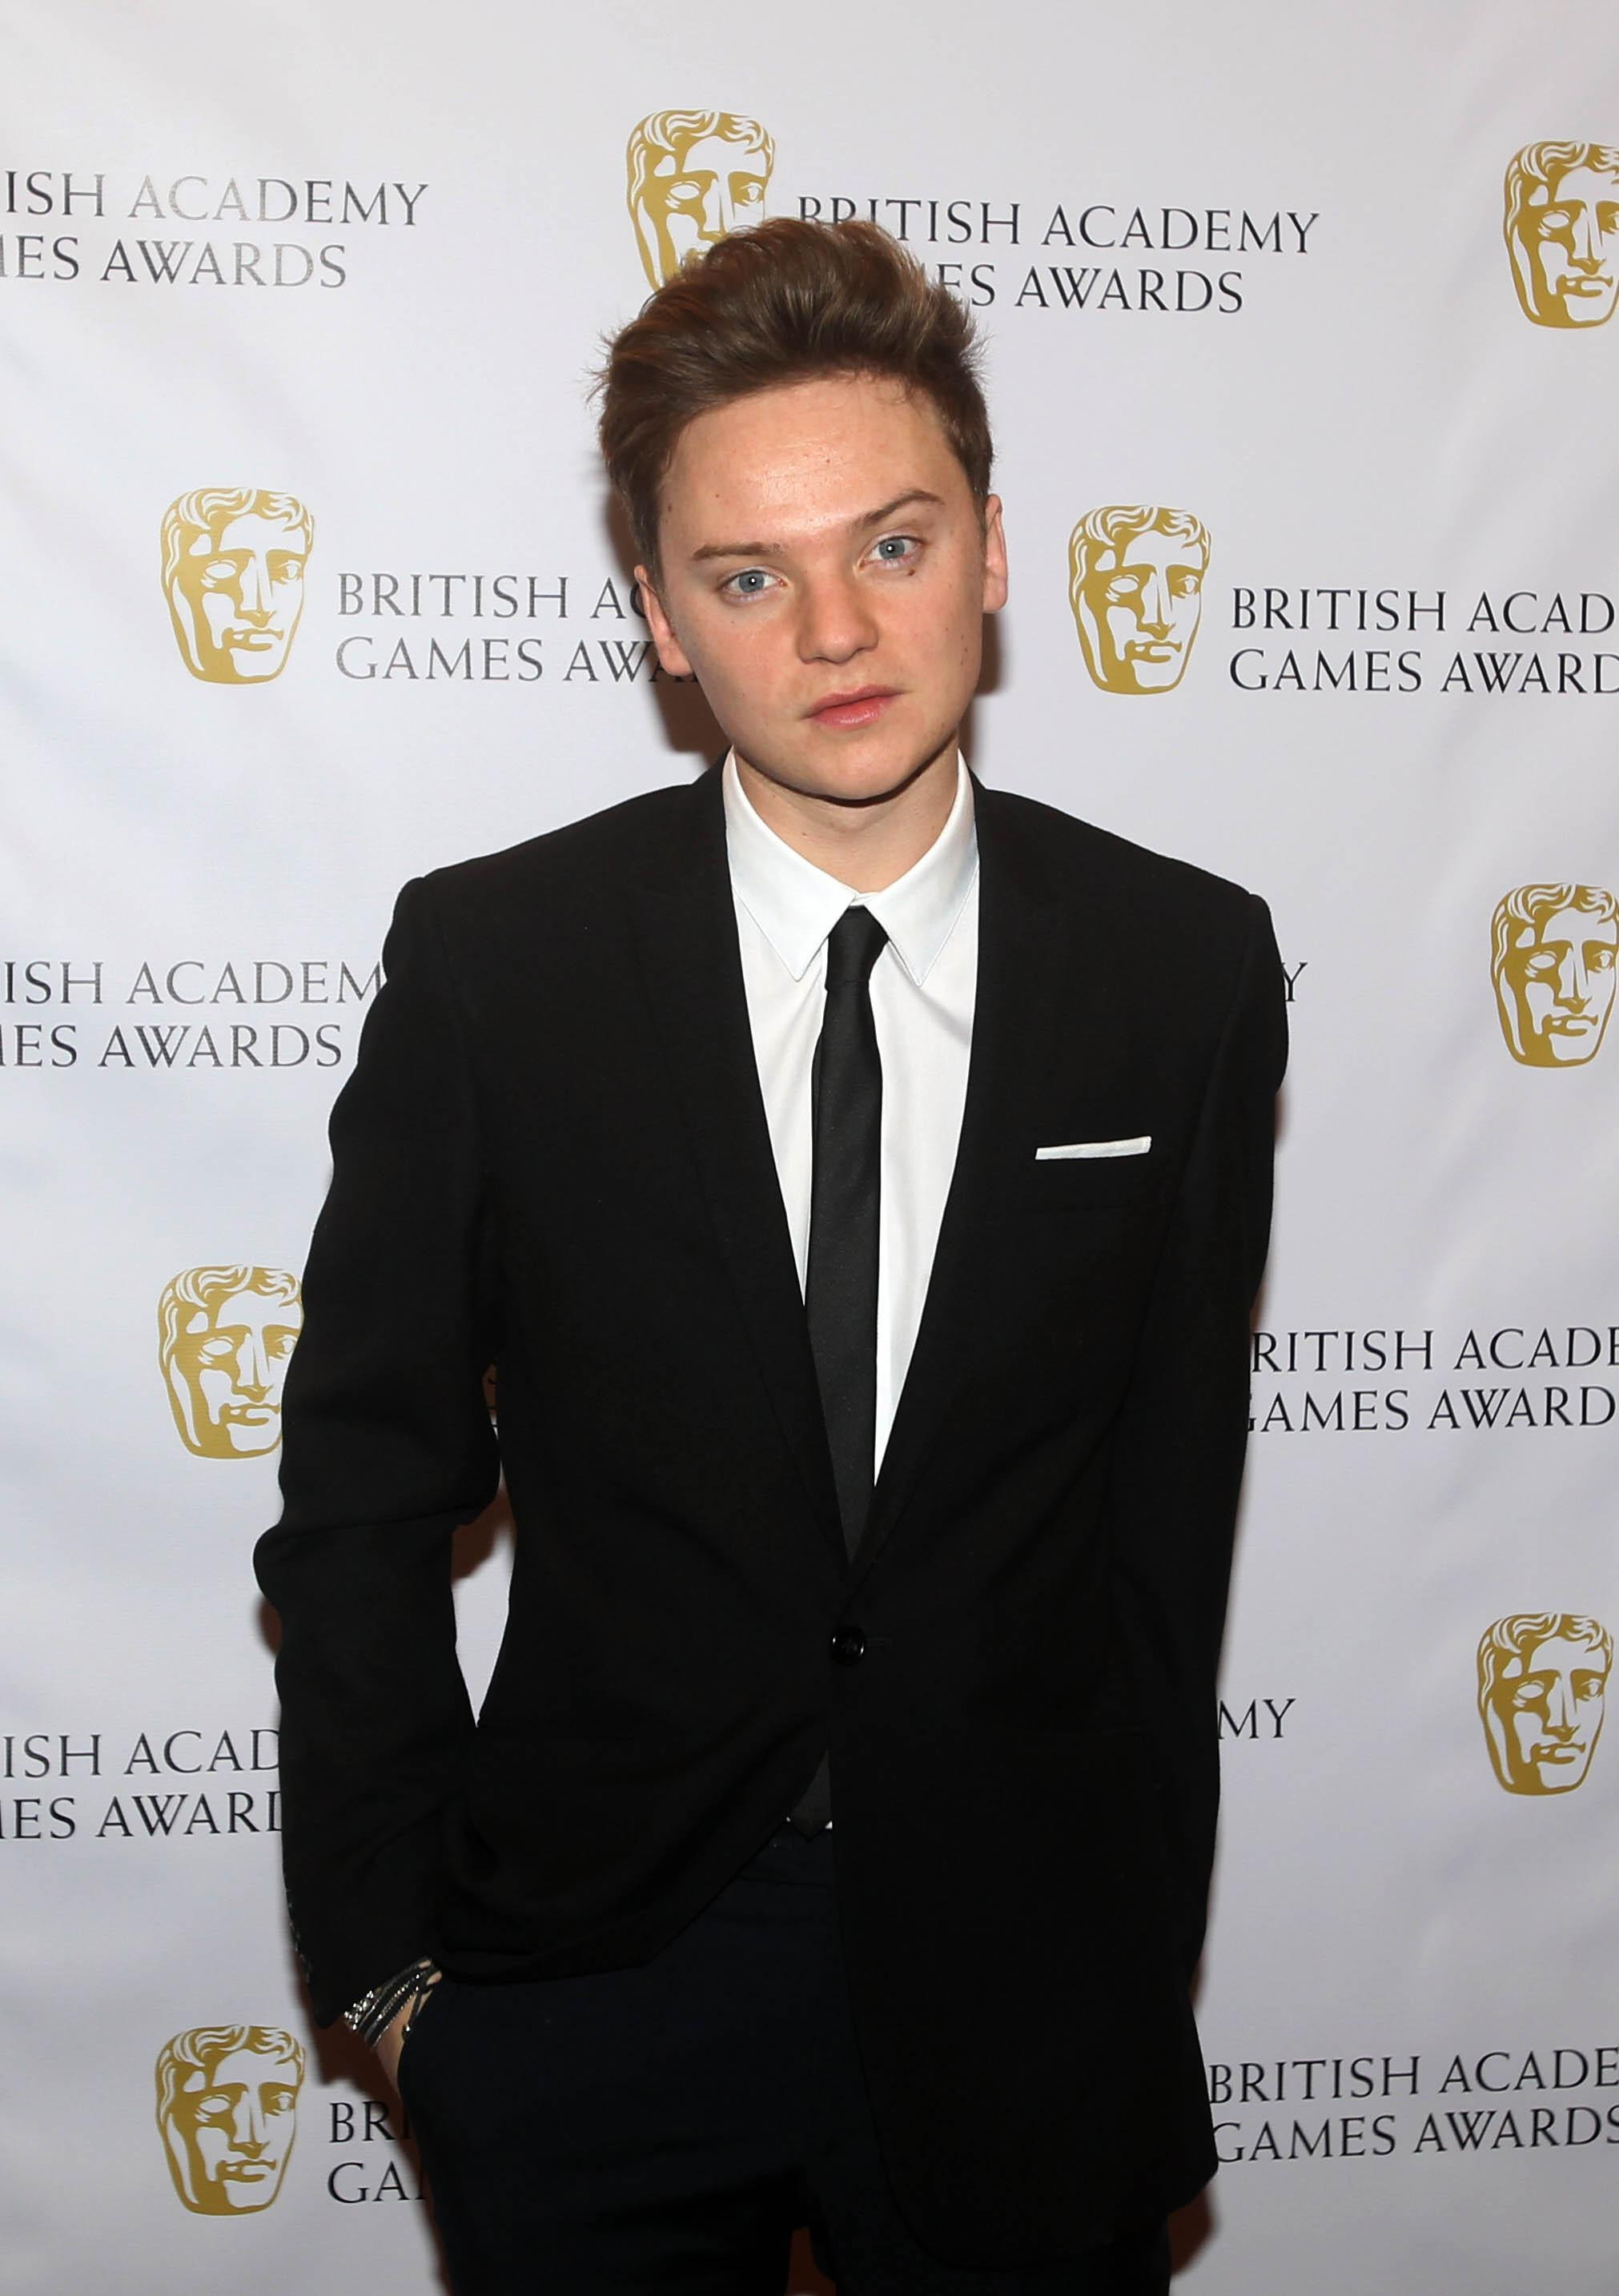 Conor Maynard planning to hide behind Justin Timberlake's drum kit so he can finally meet the star at Yahoo! Wireless Festival